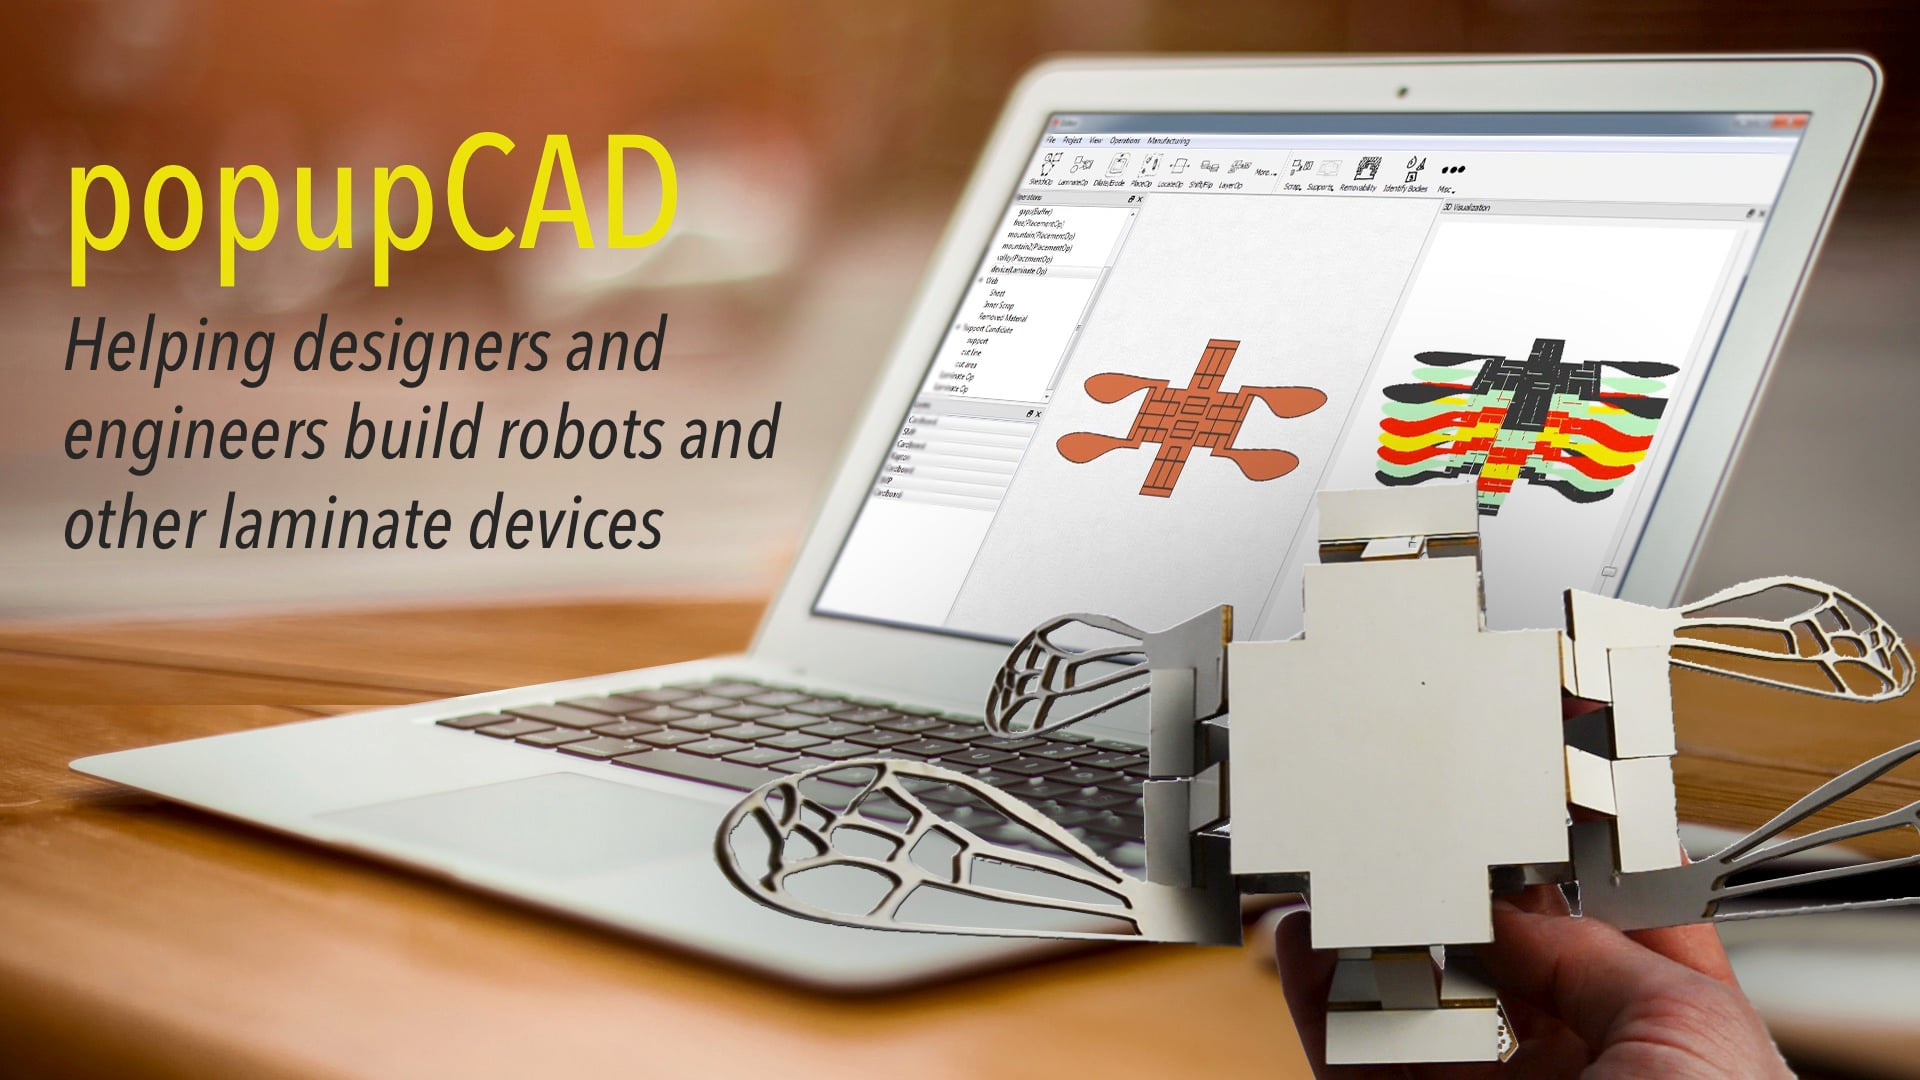 popupCAD: Helping designers and engineers build robots other laminate devices